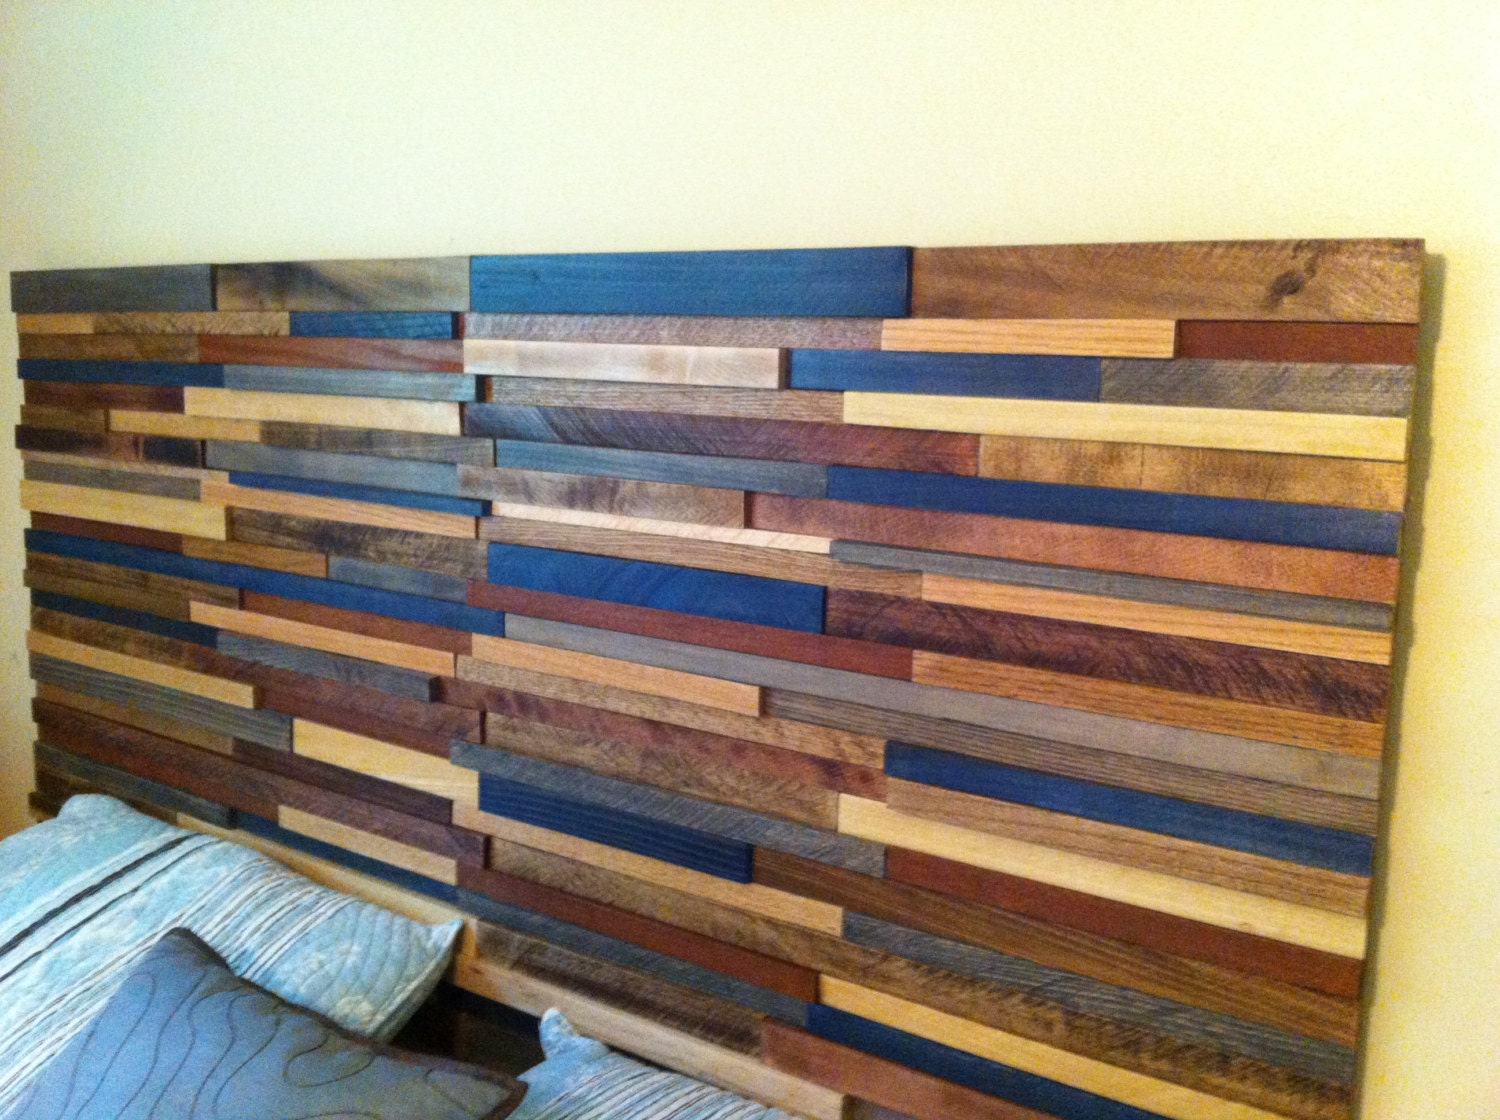 queen reclaimed wood headboard by jenssimpledimensions on etsy. Black Bedroom Furniture Sets. Home Design Ideas